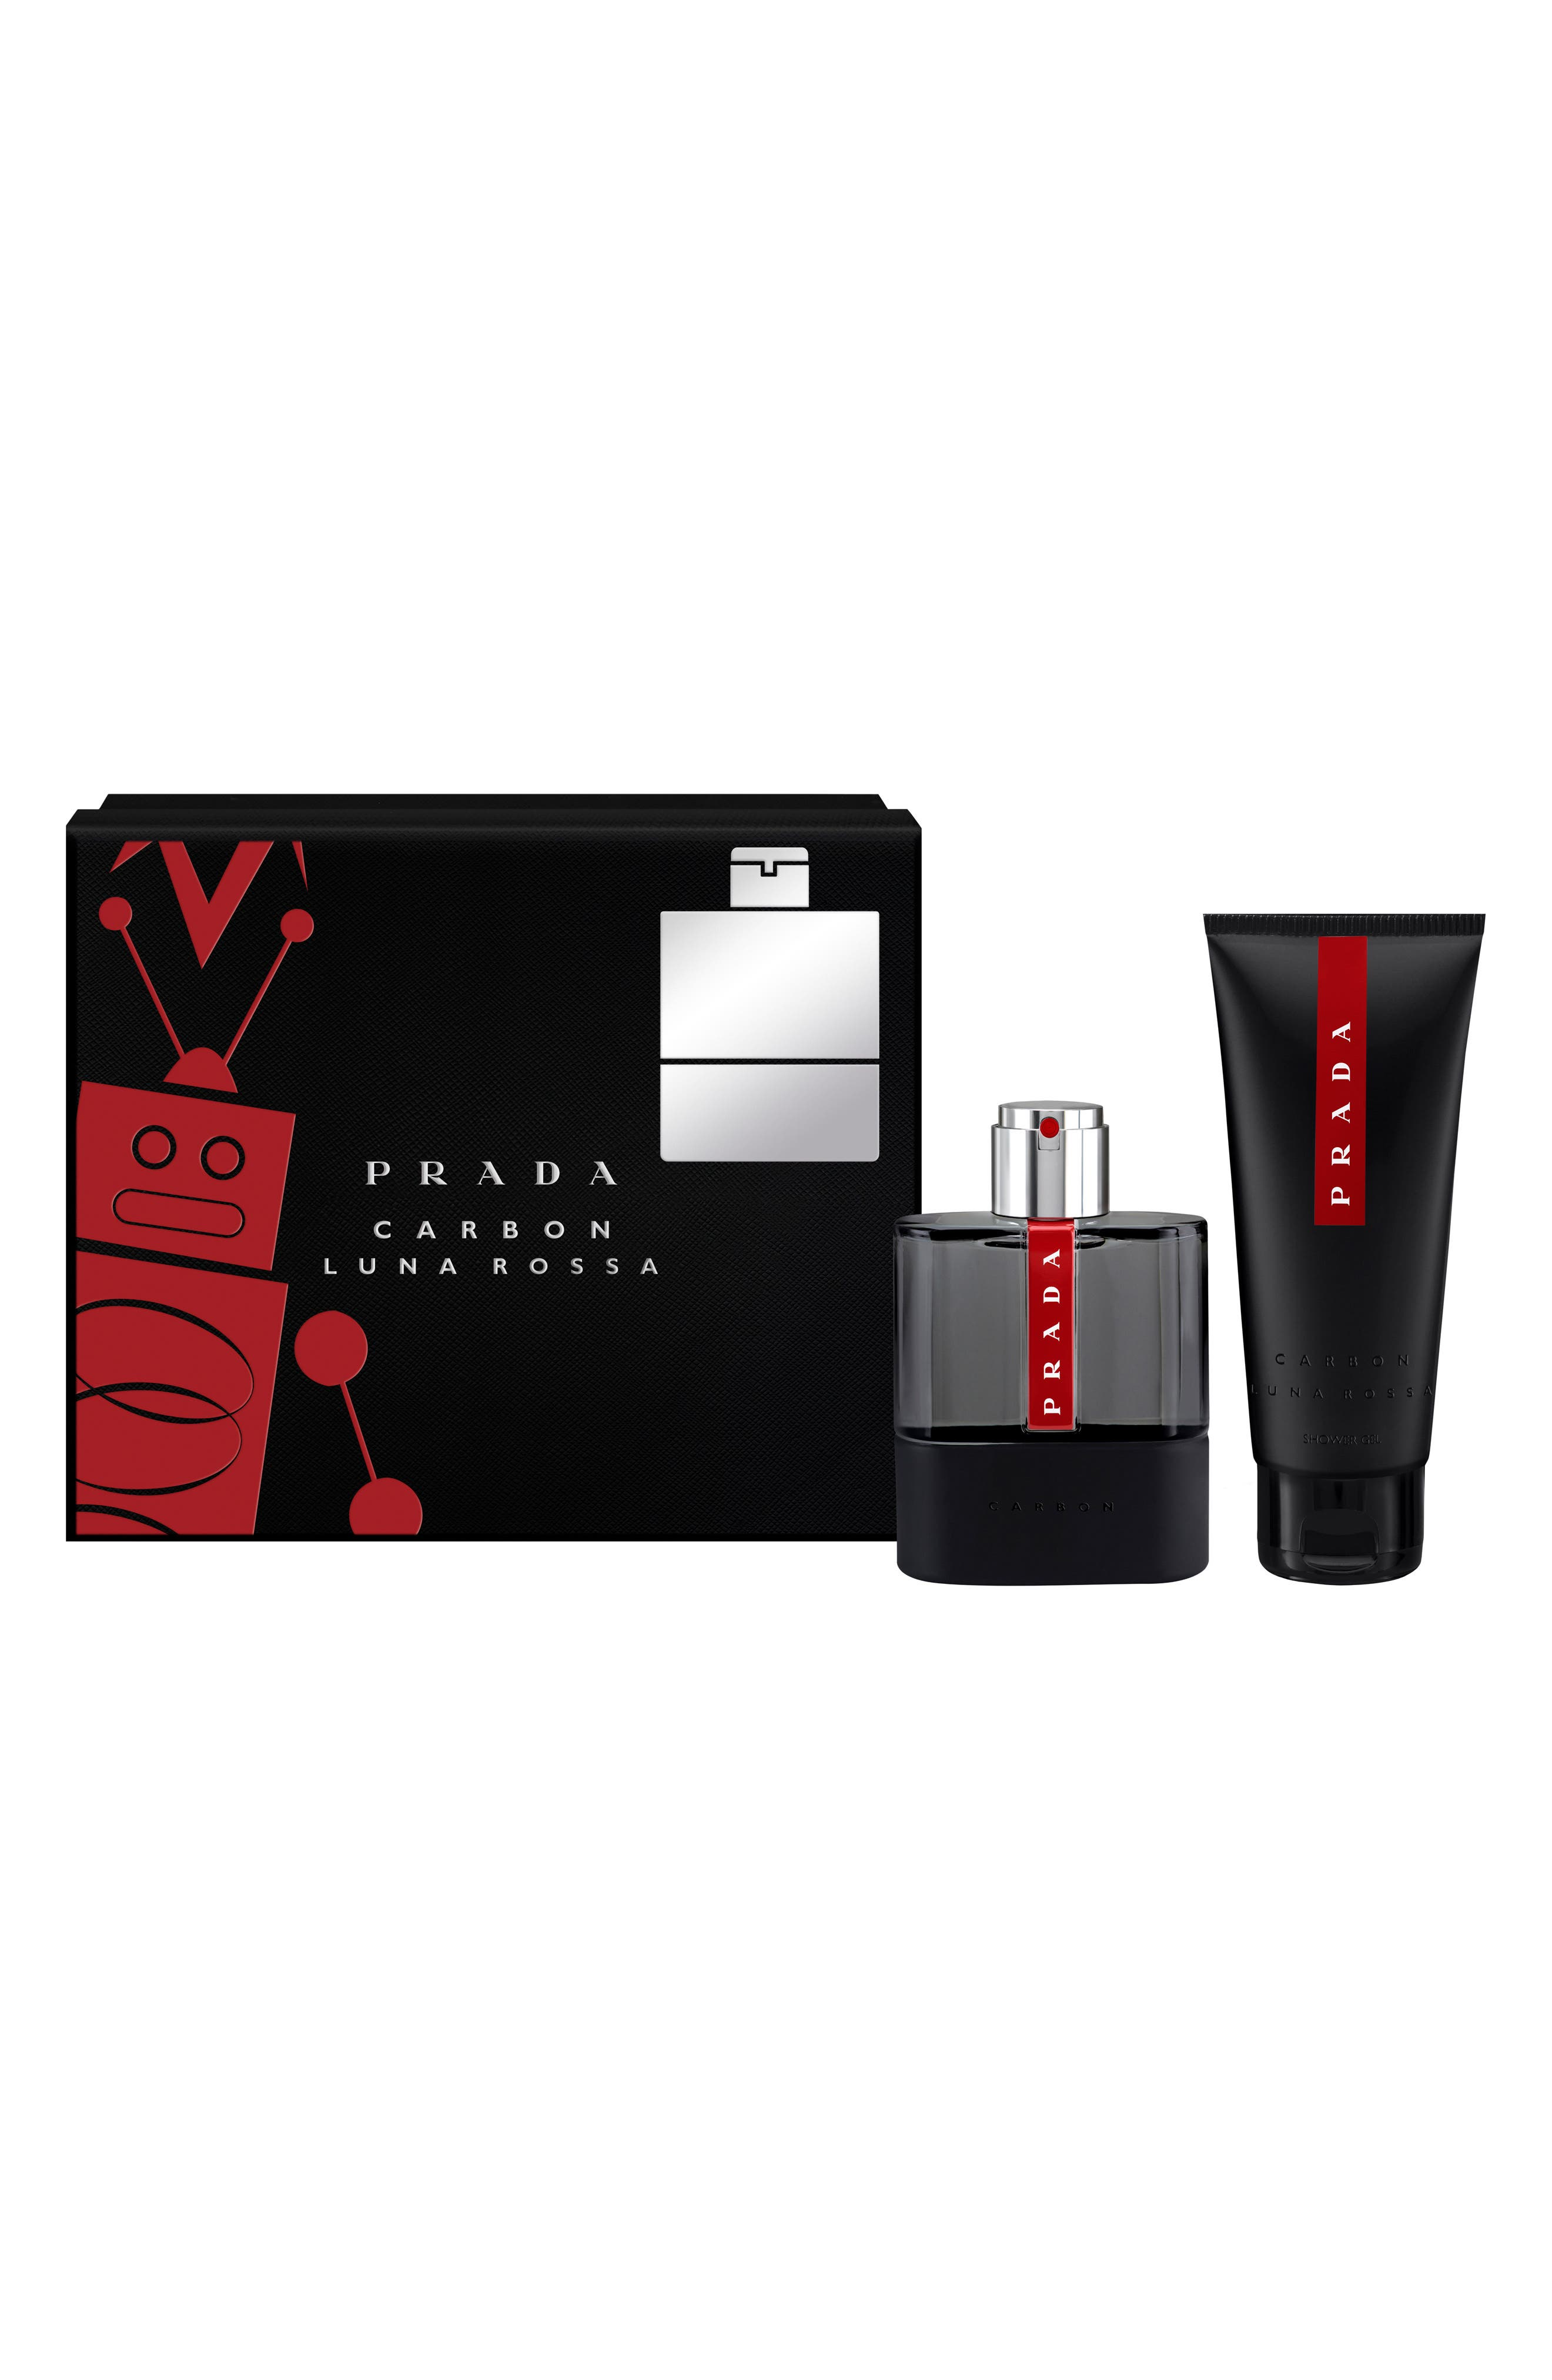 Prada Luna Rossa Carbon Set ($104 Value)